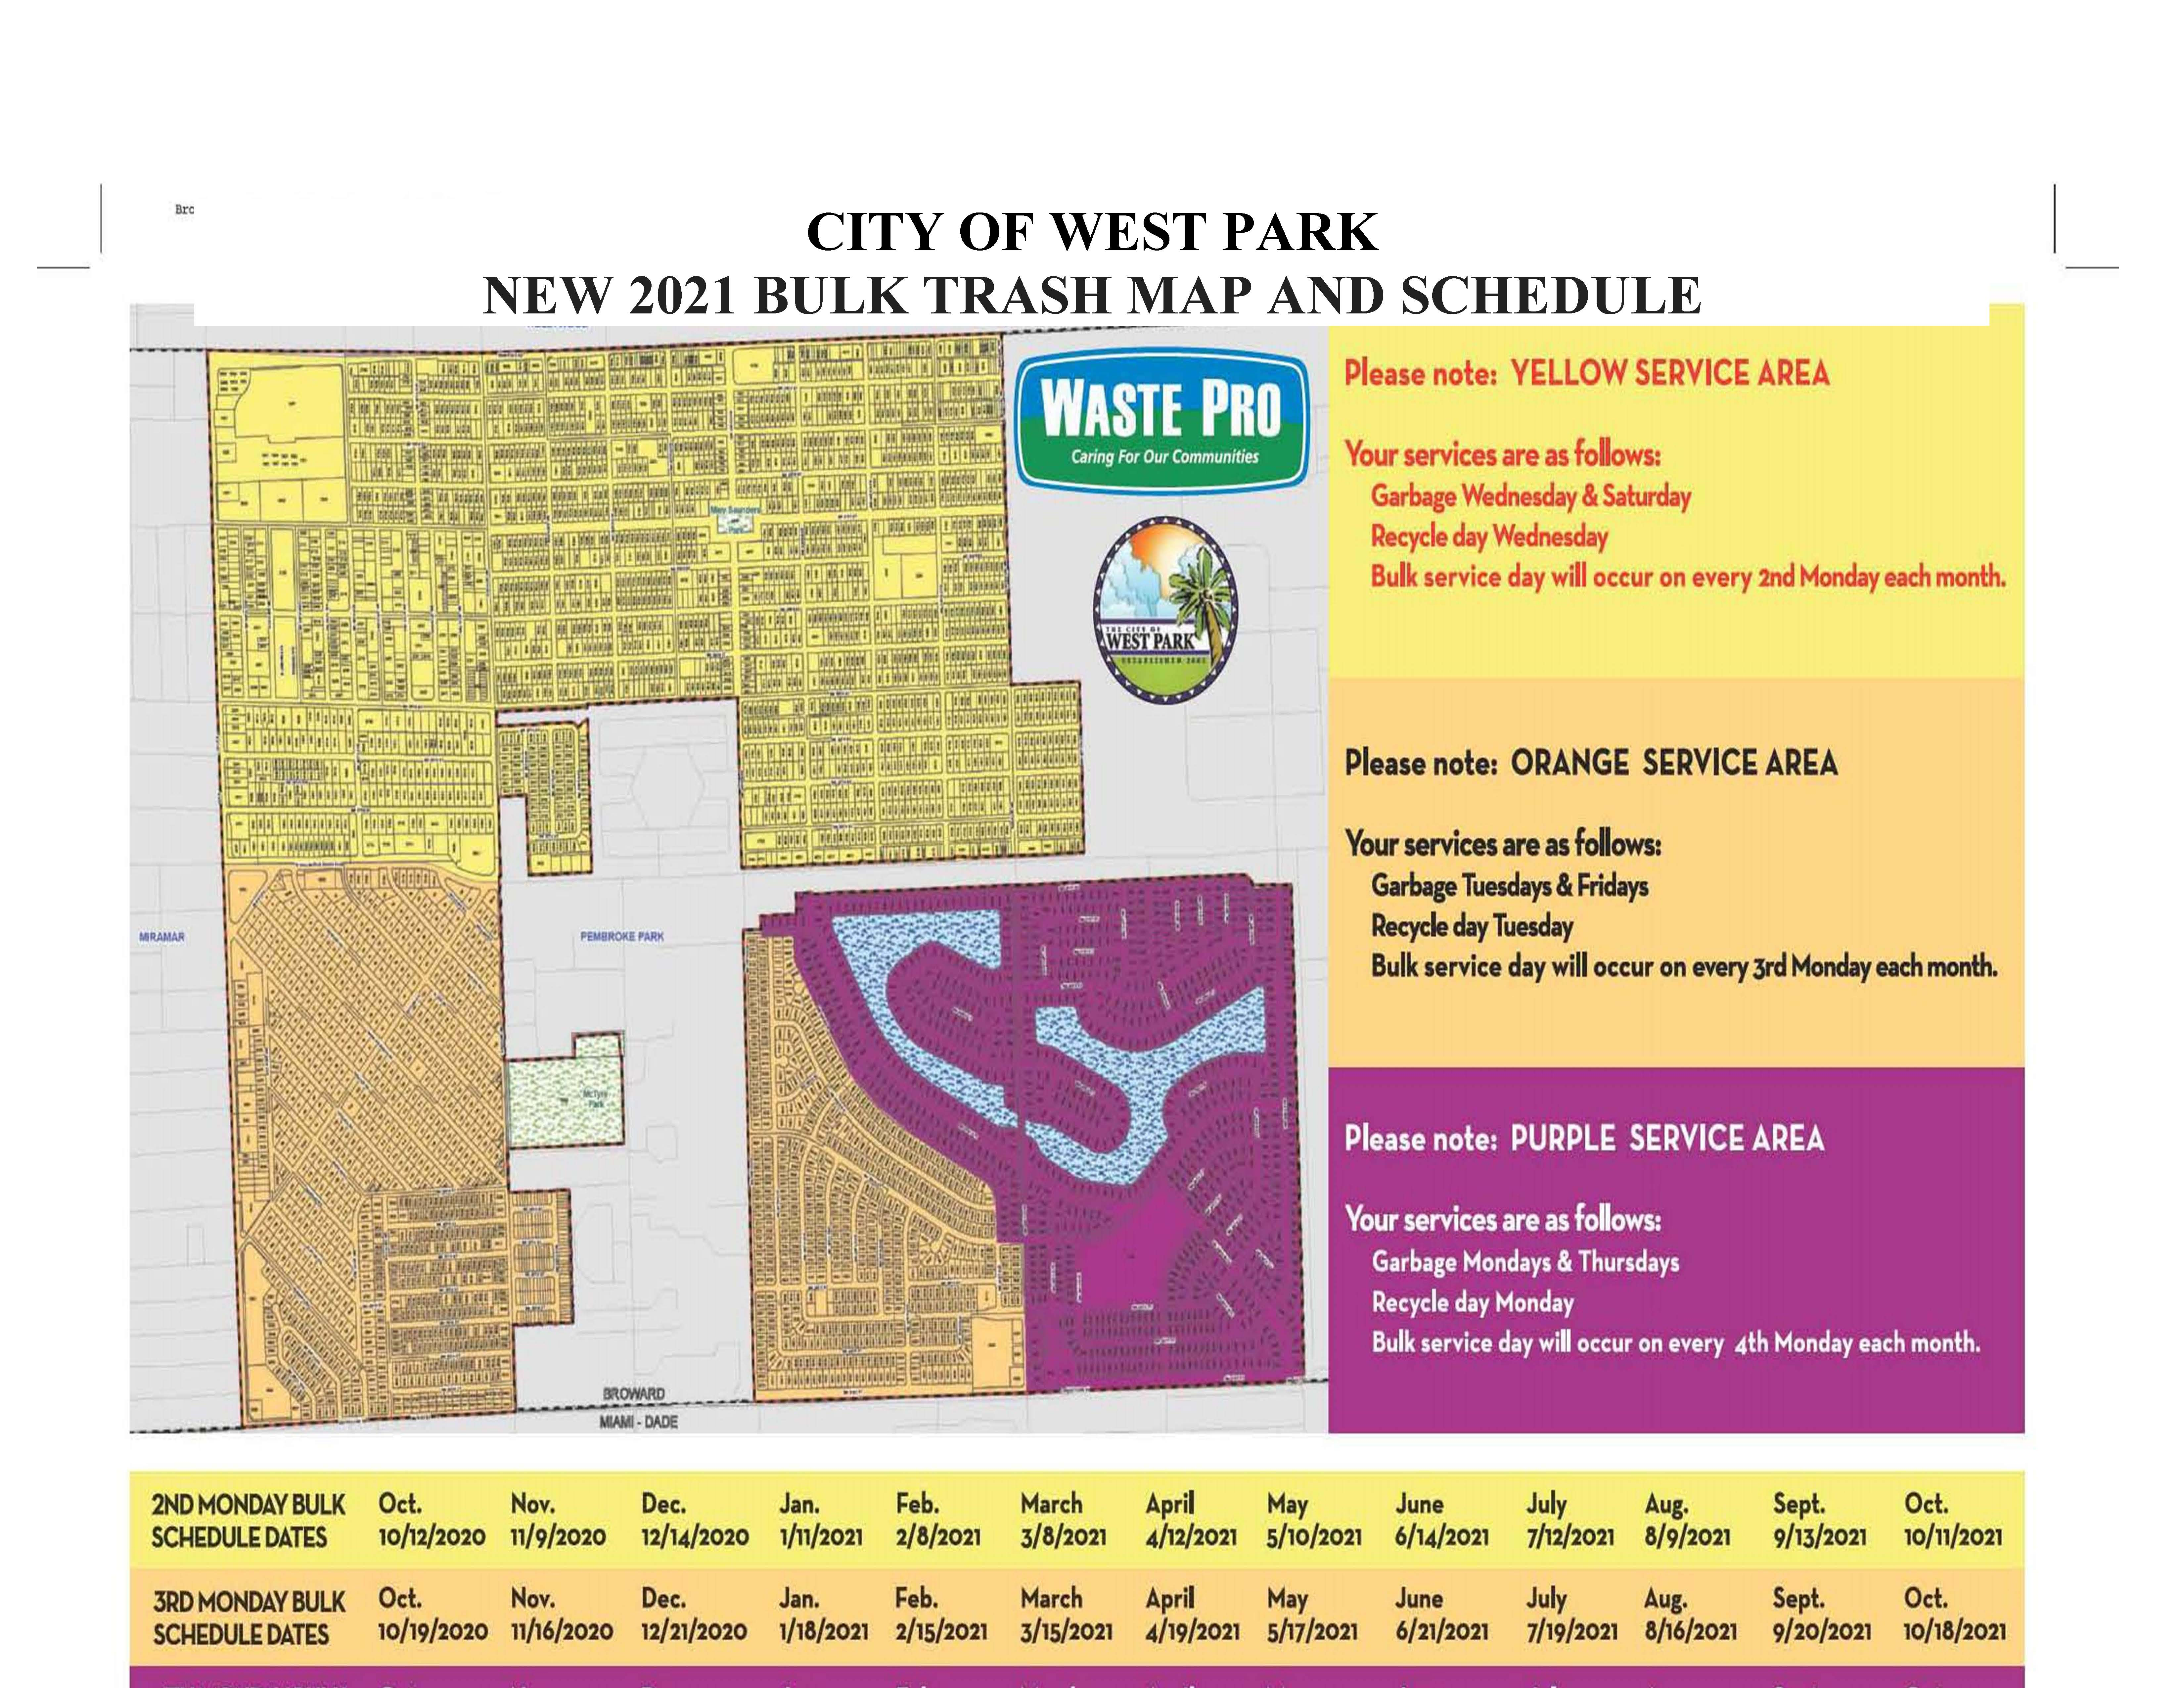 CITY OF WEST PARK  NEW 2021 BULK TRASH MAP AND SCHEDULE